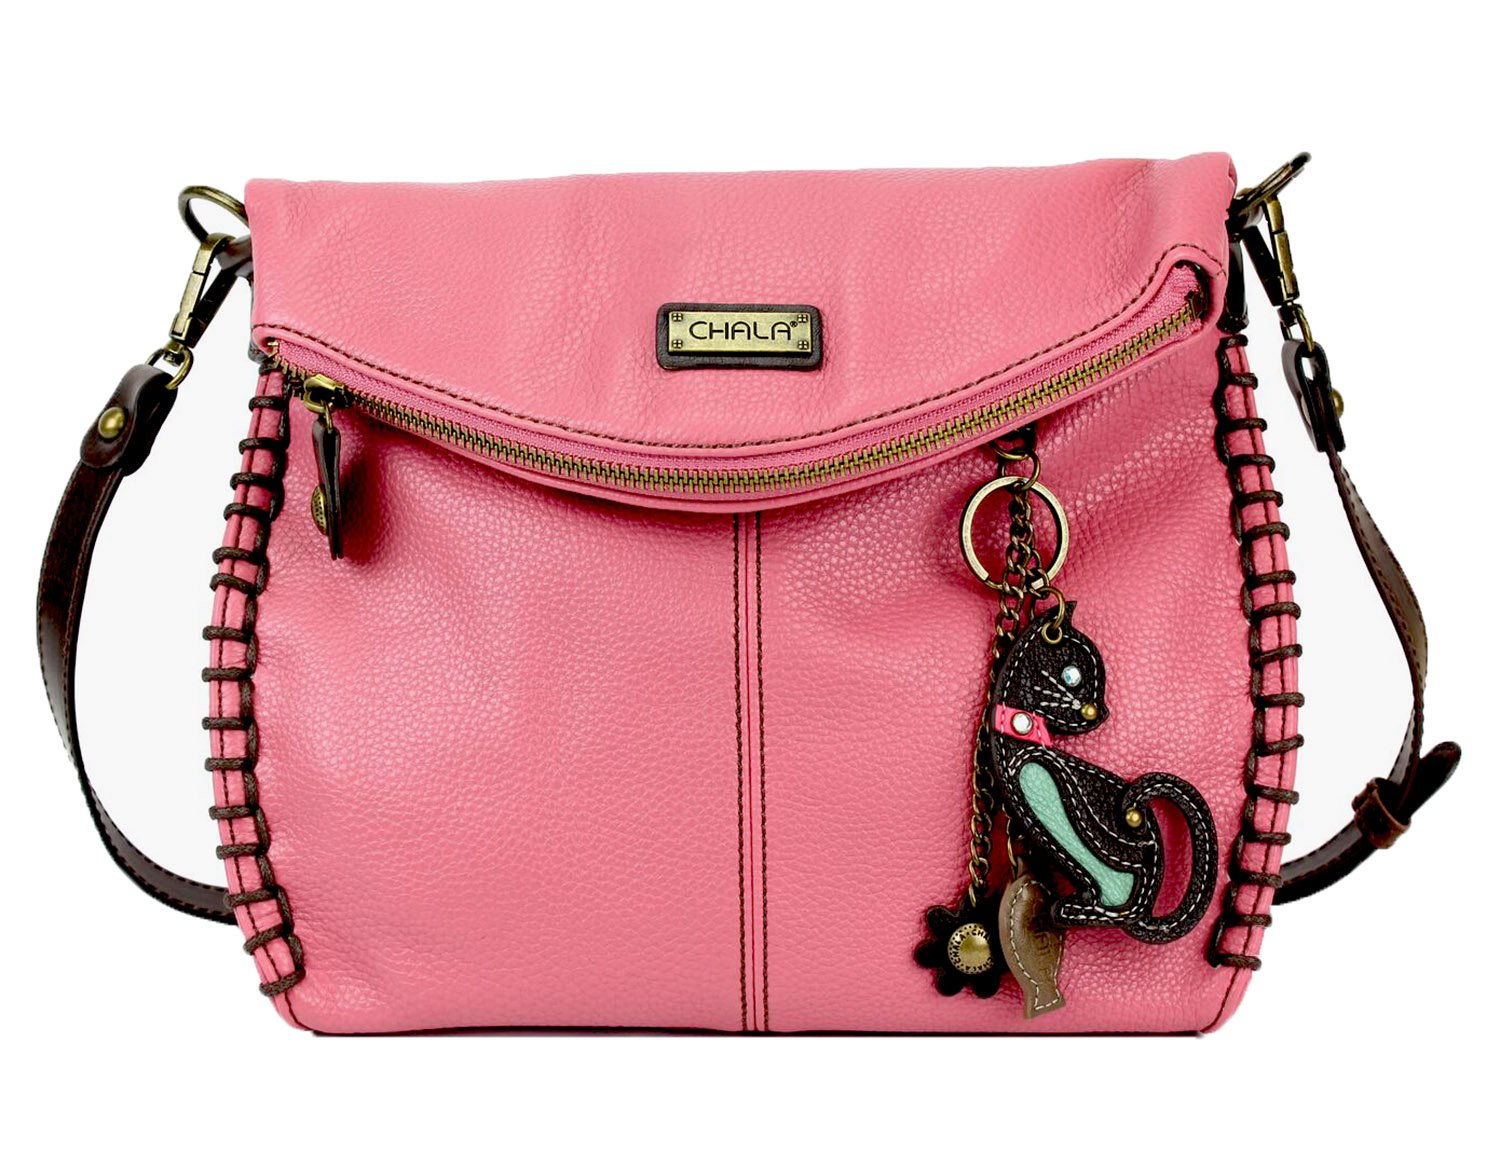 Chala Charming Crossbody Bag With Flap Top   Flap and Zipper Cross-Body Purse or Shoulder Handbag with Metal Chain - Pink - Cat